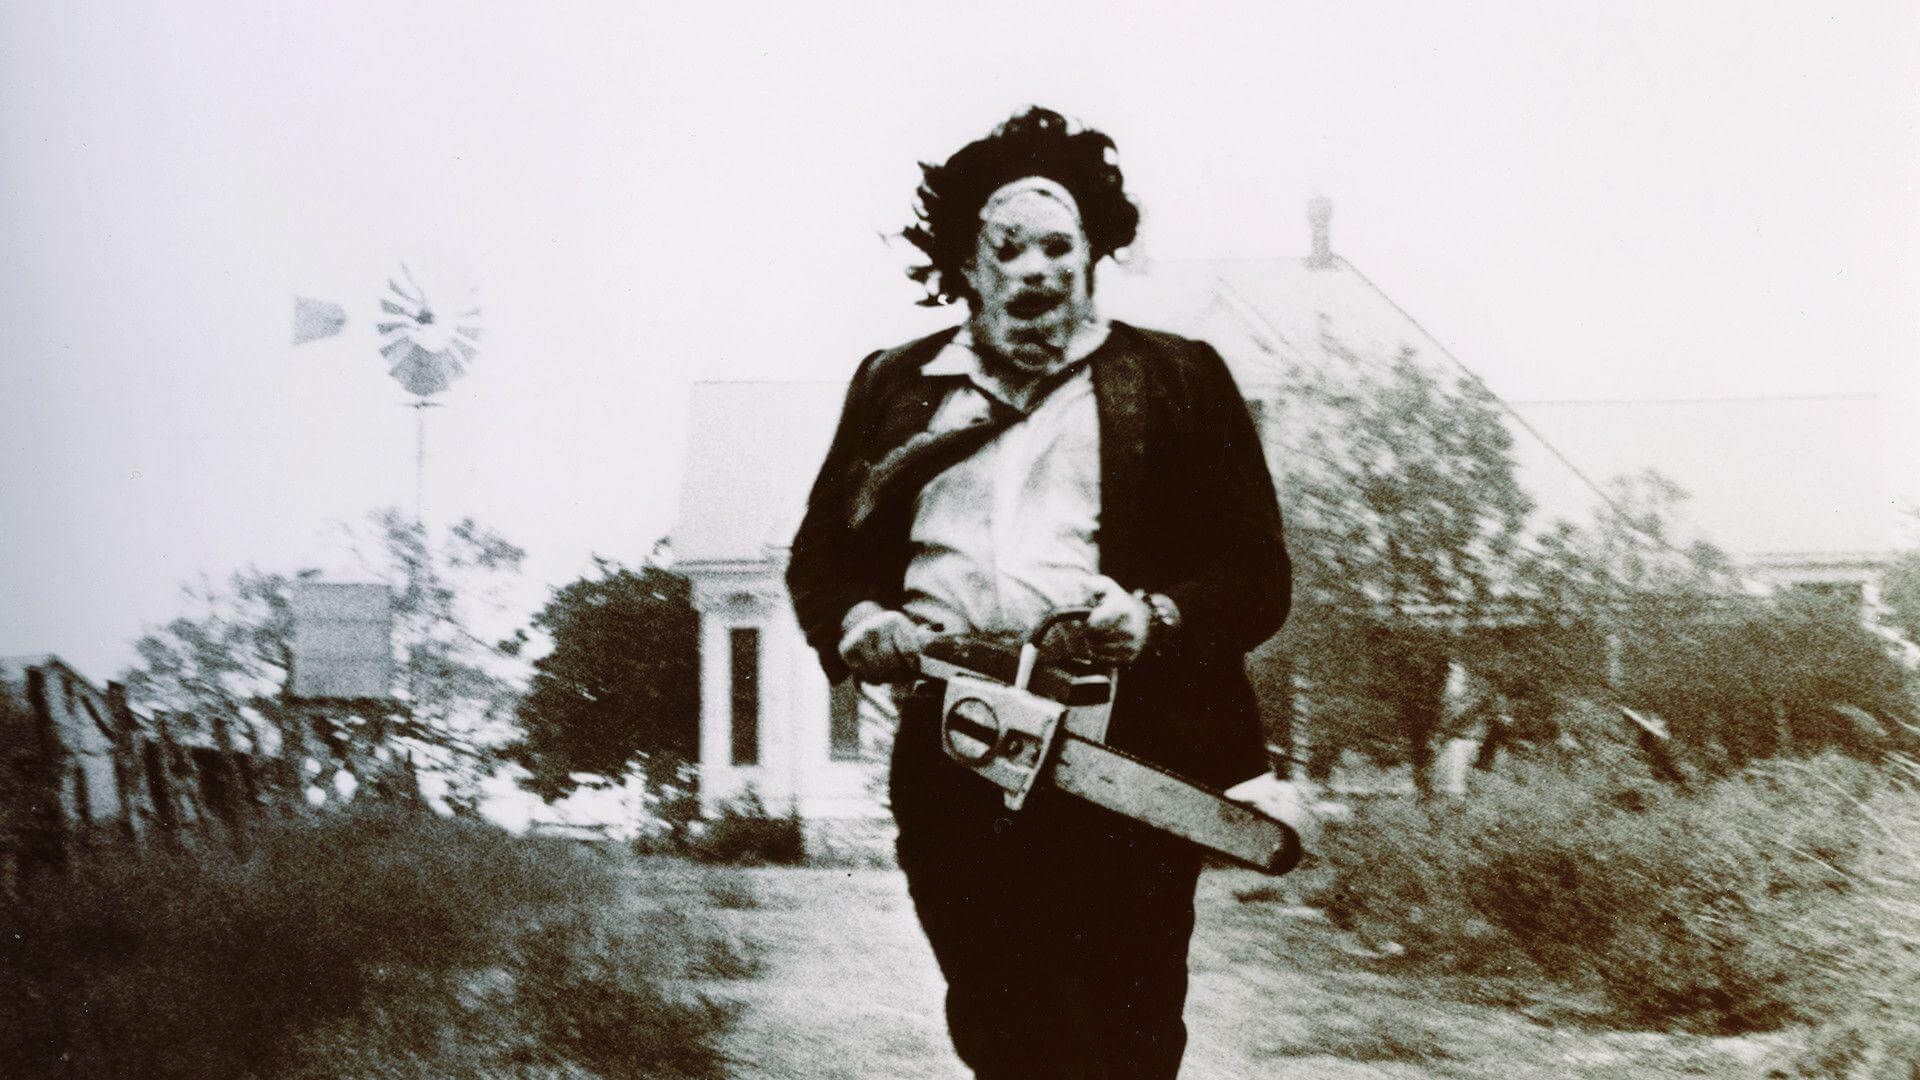 Ambitious Entertainment Developing Film Based on Leatherface Book